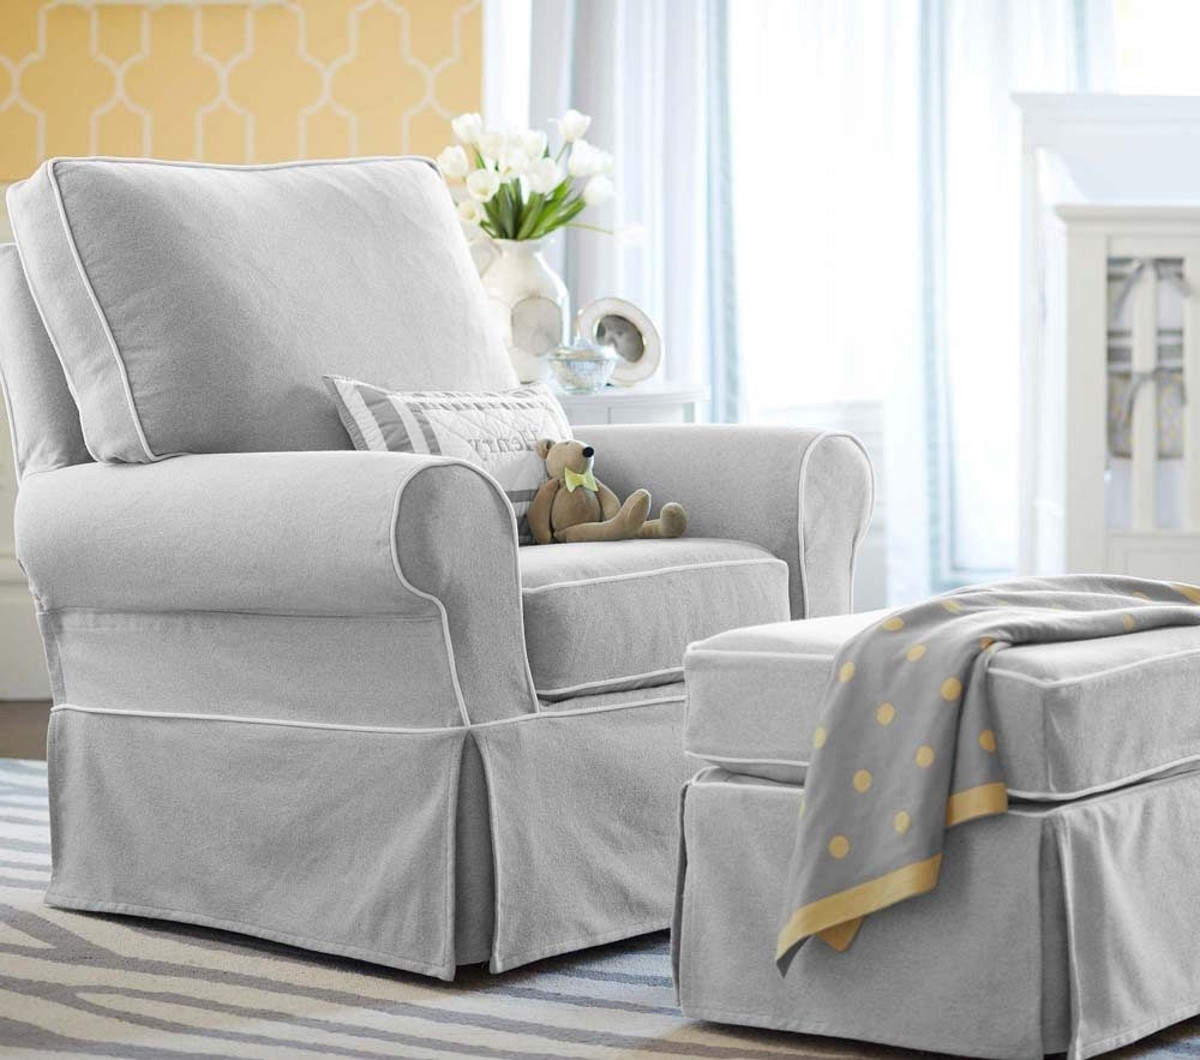 Recent The Most Comfortable Nursing Chair & Ottoman (View 13 of 15)